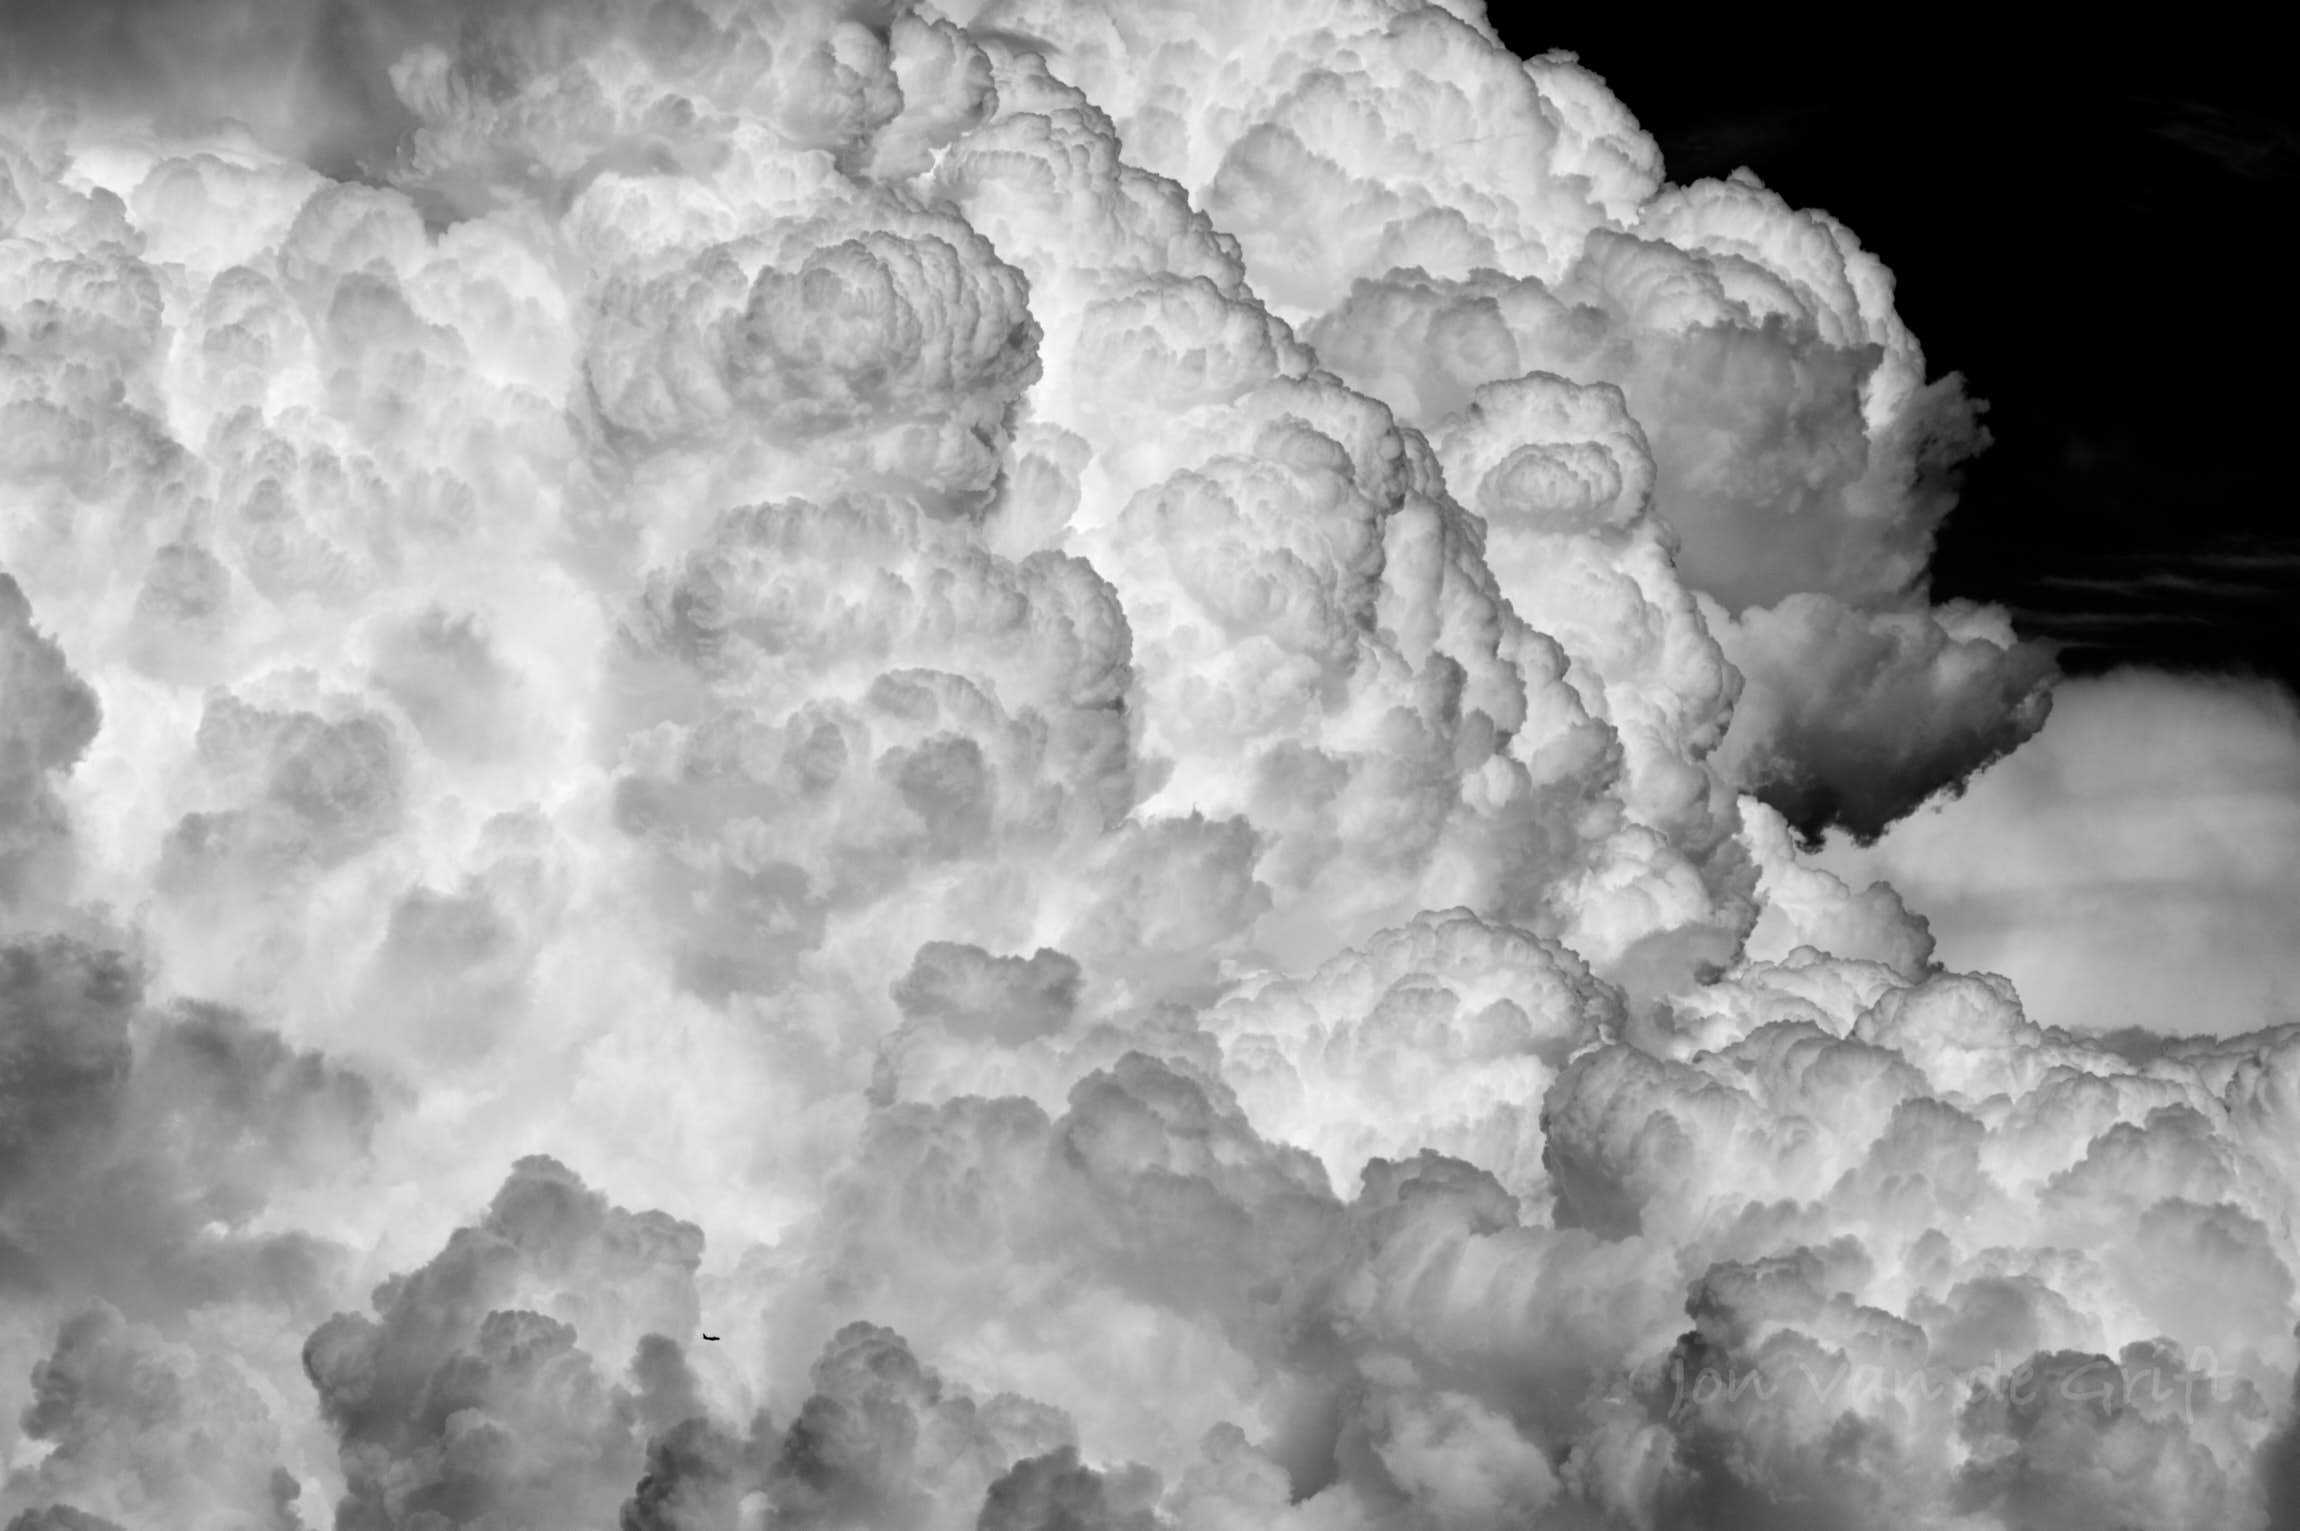 Black and white aerial photograph of a strong thunderstorm in the North American Monsoon